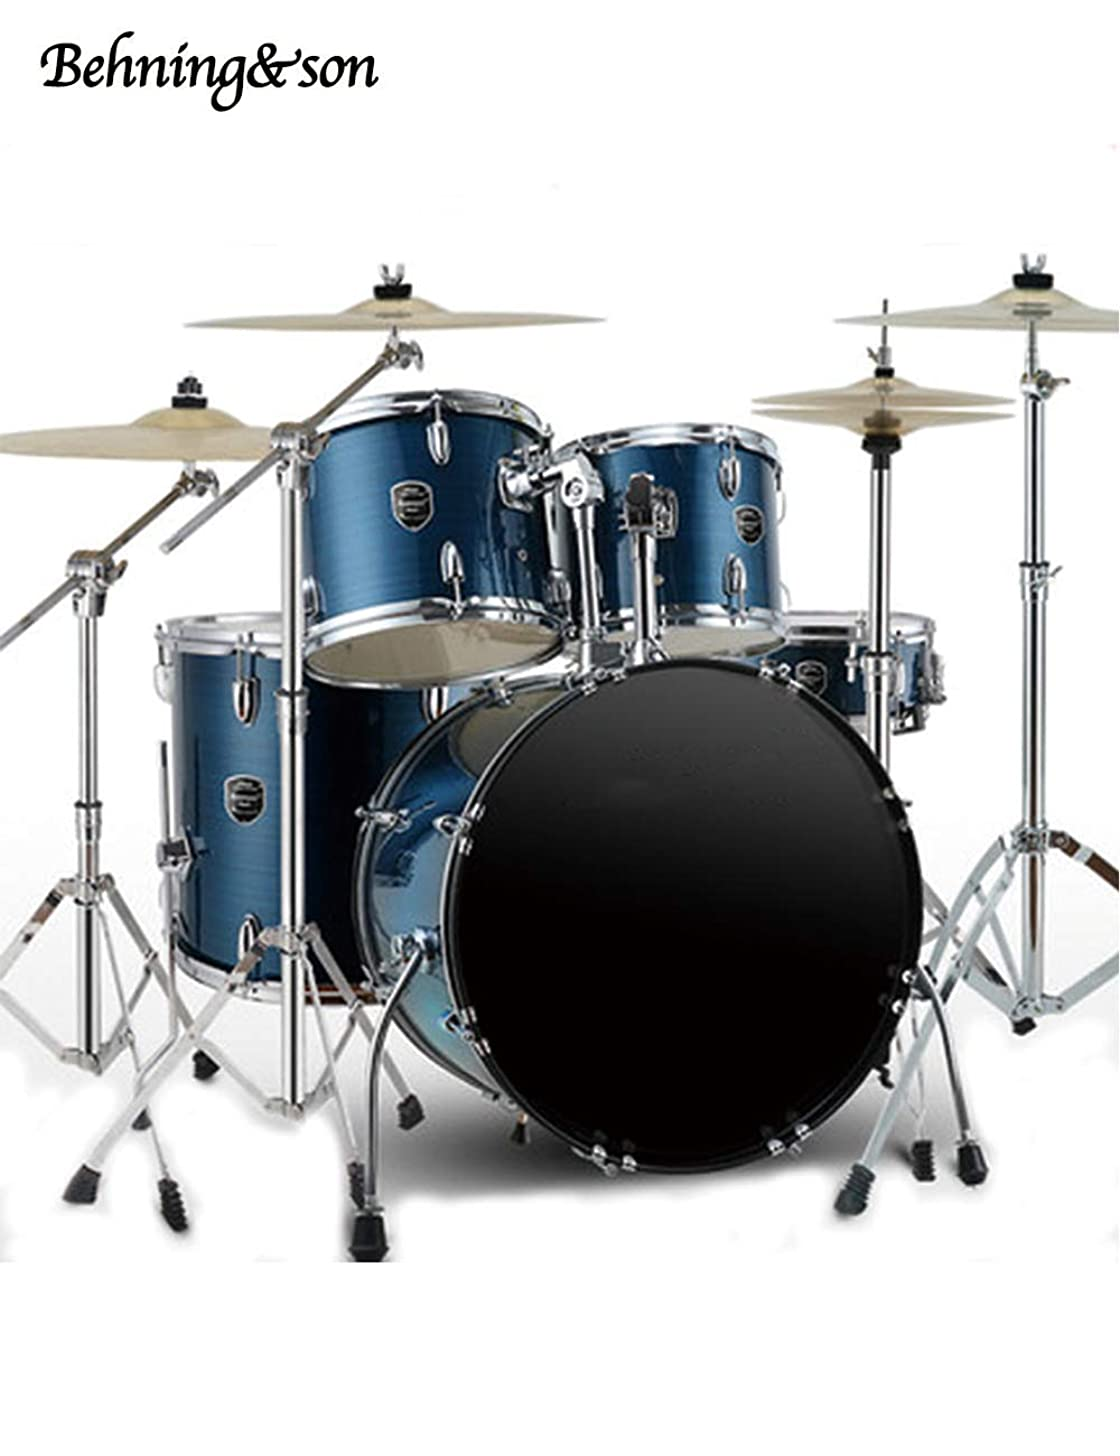 Behning & son Blue 5 Piece Drum Set with Cymbals Stands Hardware Stool and Sticks Full Adult Size Complete